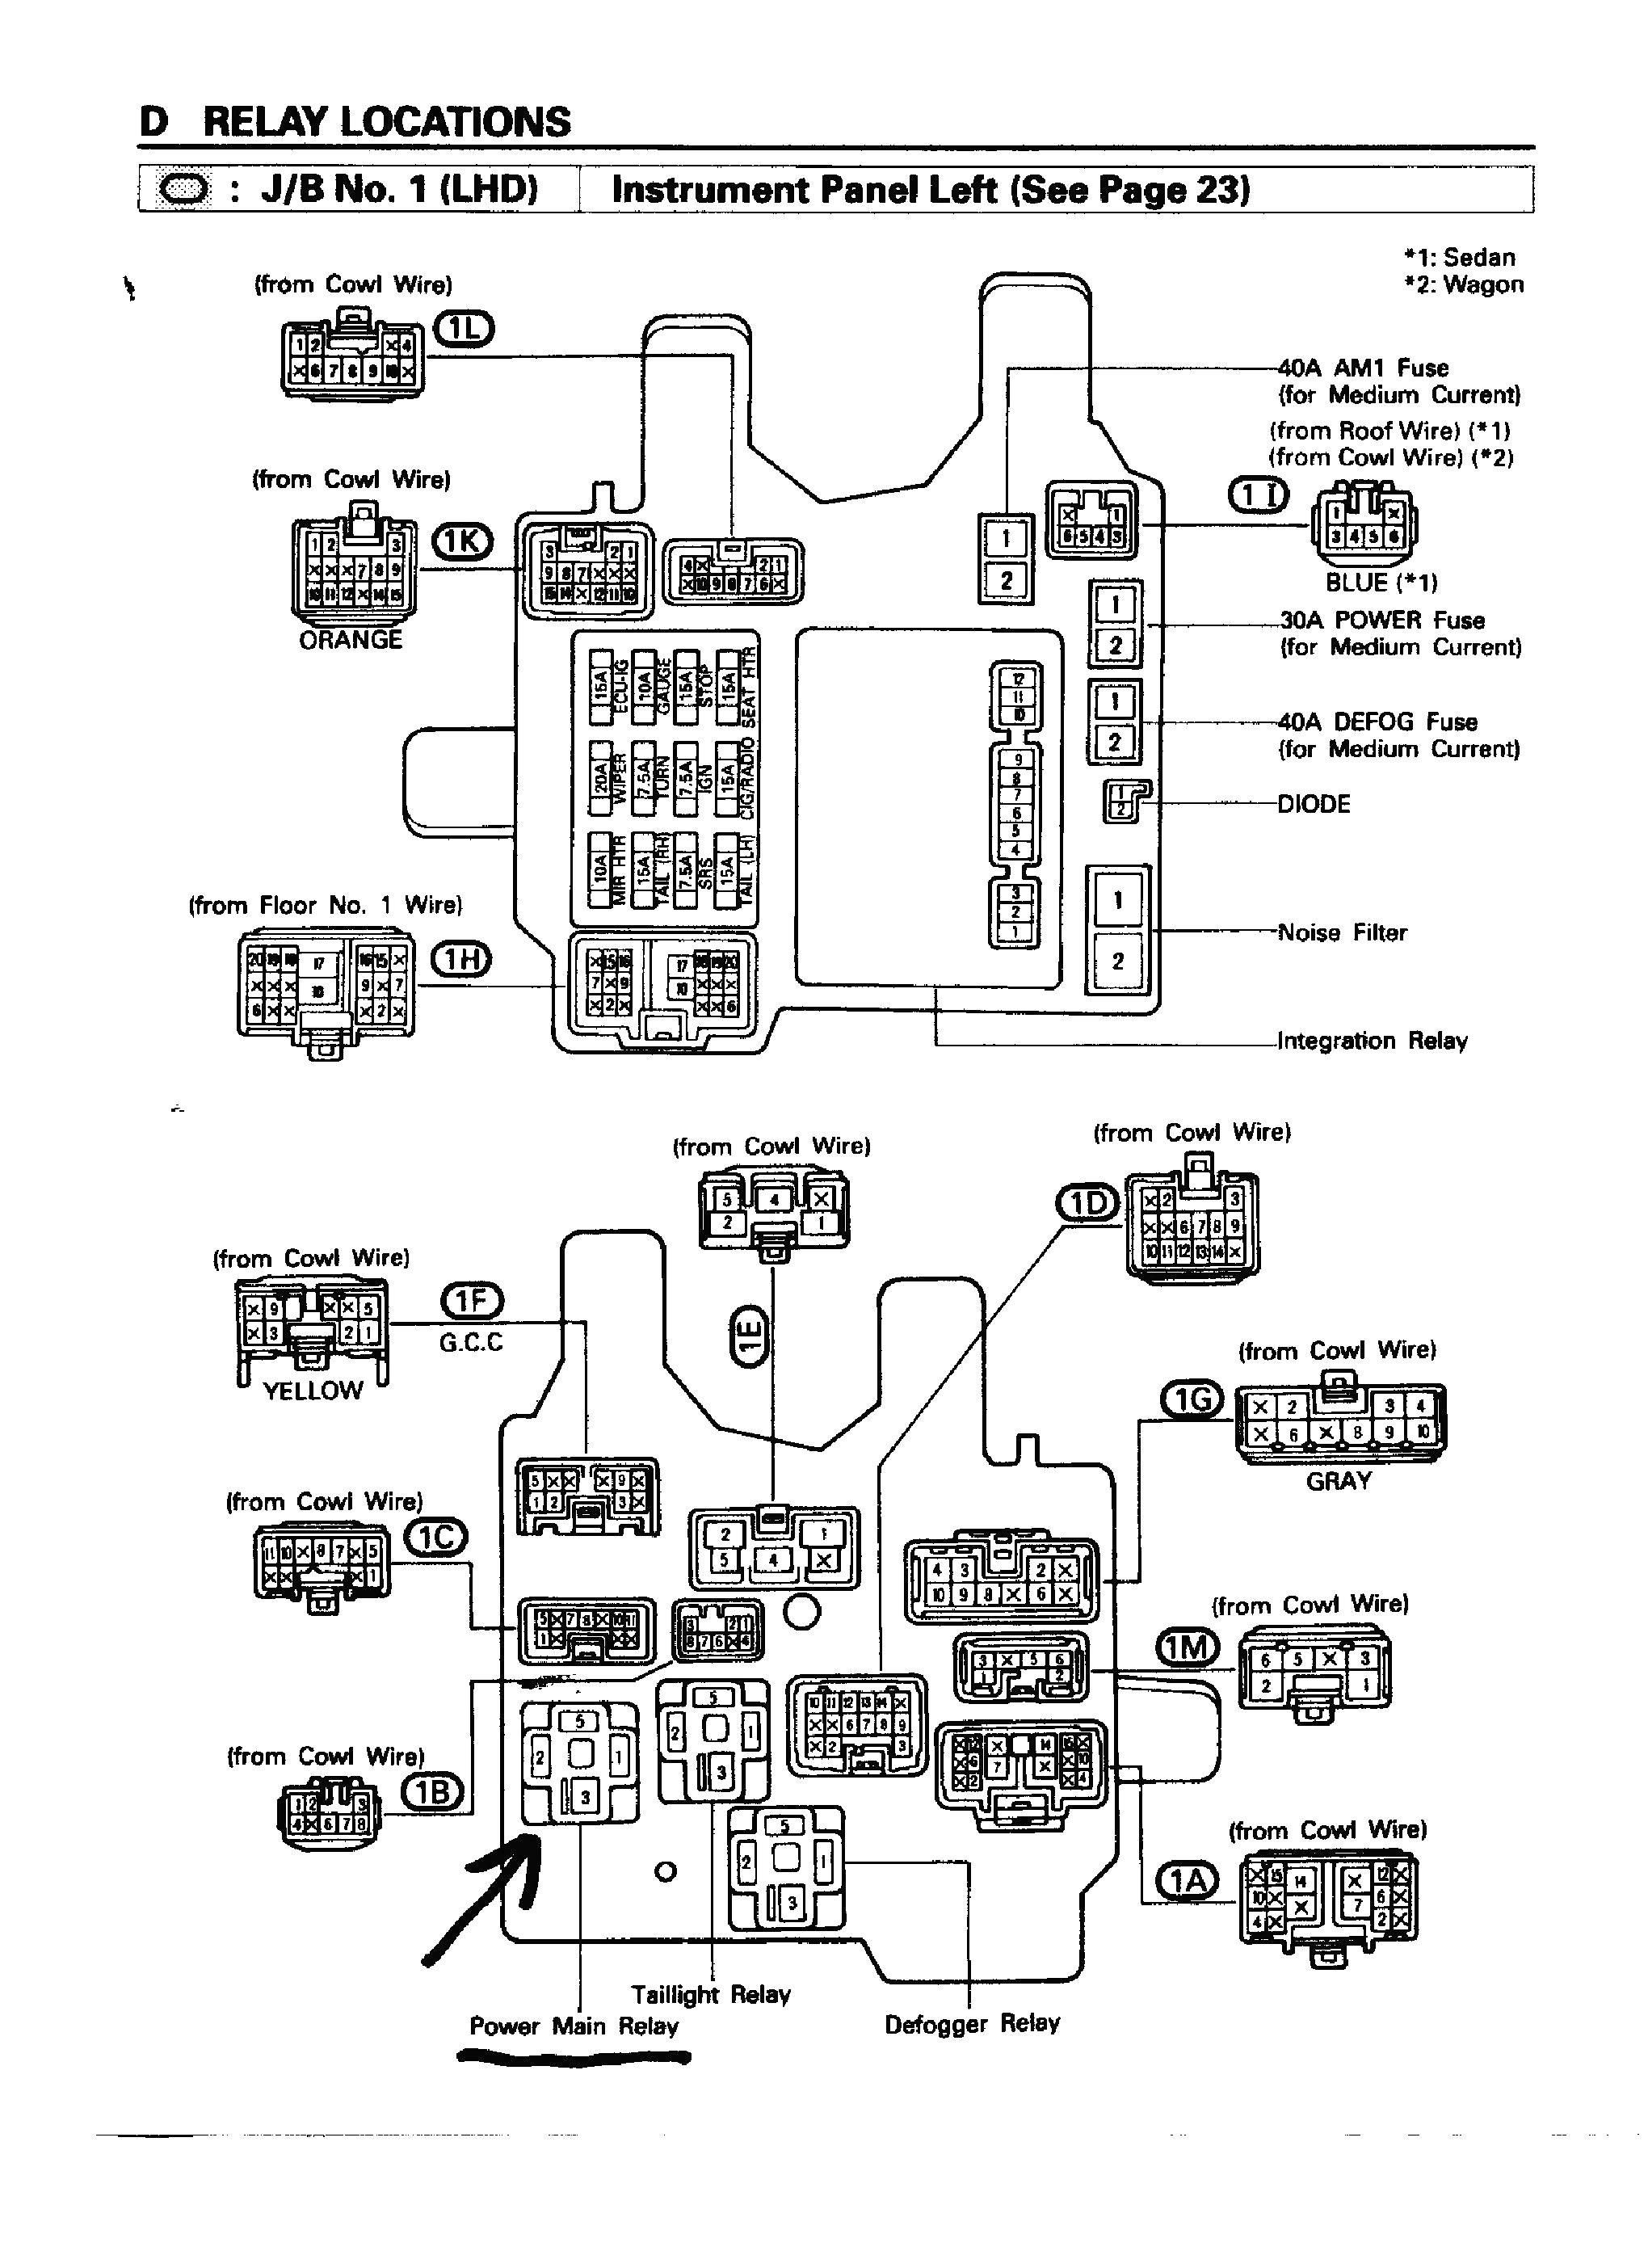 Bad Boy Buggy Wiring | Wiring Diagram Bad Boy Buggy Wiring Block Diagram on bad boy buggy parts, bad boy buggy tires, bad boy mtv battery diagram, bad boy buggy frame, vw dune buggy ignition wiring diagram, bad boy buggy lights, bad boy buggy troubleshooting, cushman buggy wiring diagram, bad boy buggy forum, bad boy buggies, bad boy buggy schematics, bad boy buggy wheels, ezgo 36 volt battery diagram, bad boy buggy maintenance, bad boy buggy manual, bad boy buggy brake pads, bad boy buggy accessories, bad boy buggy solenoid, bad boy buggy battery, bad boy buggy 4x4,